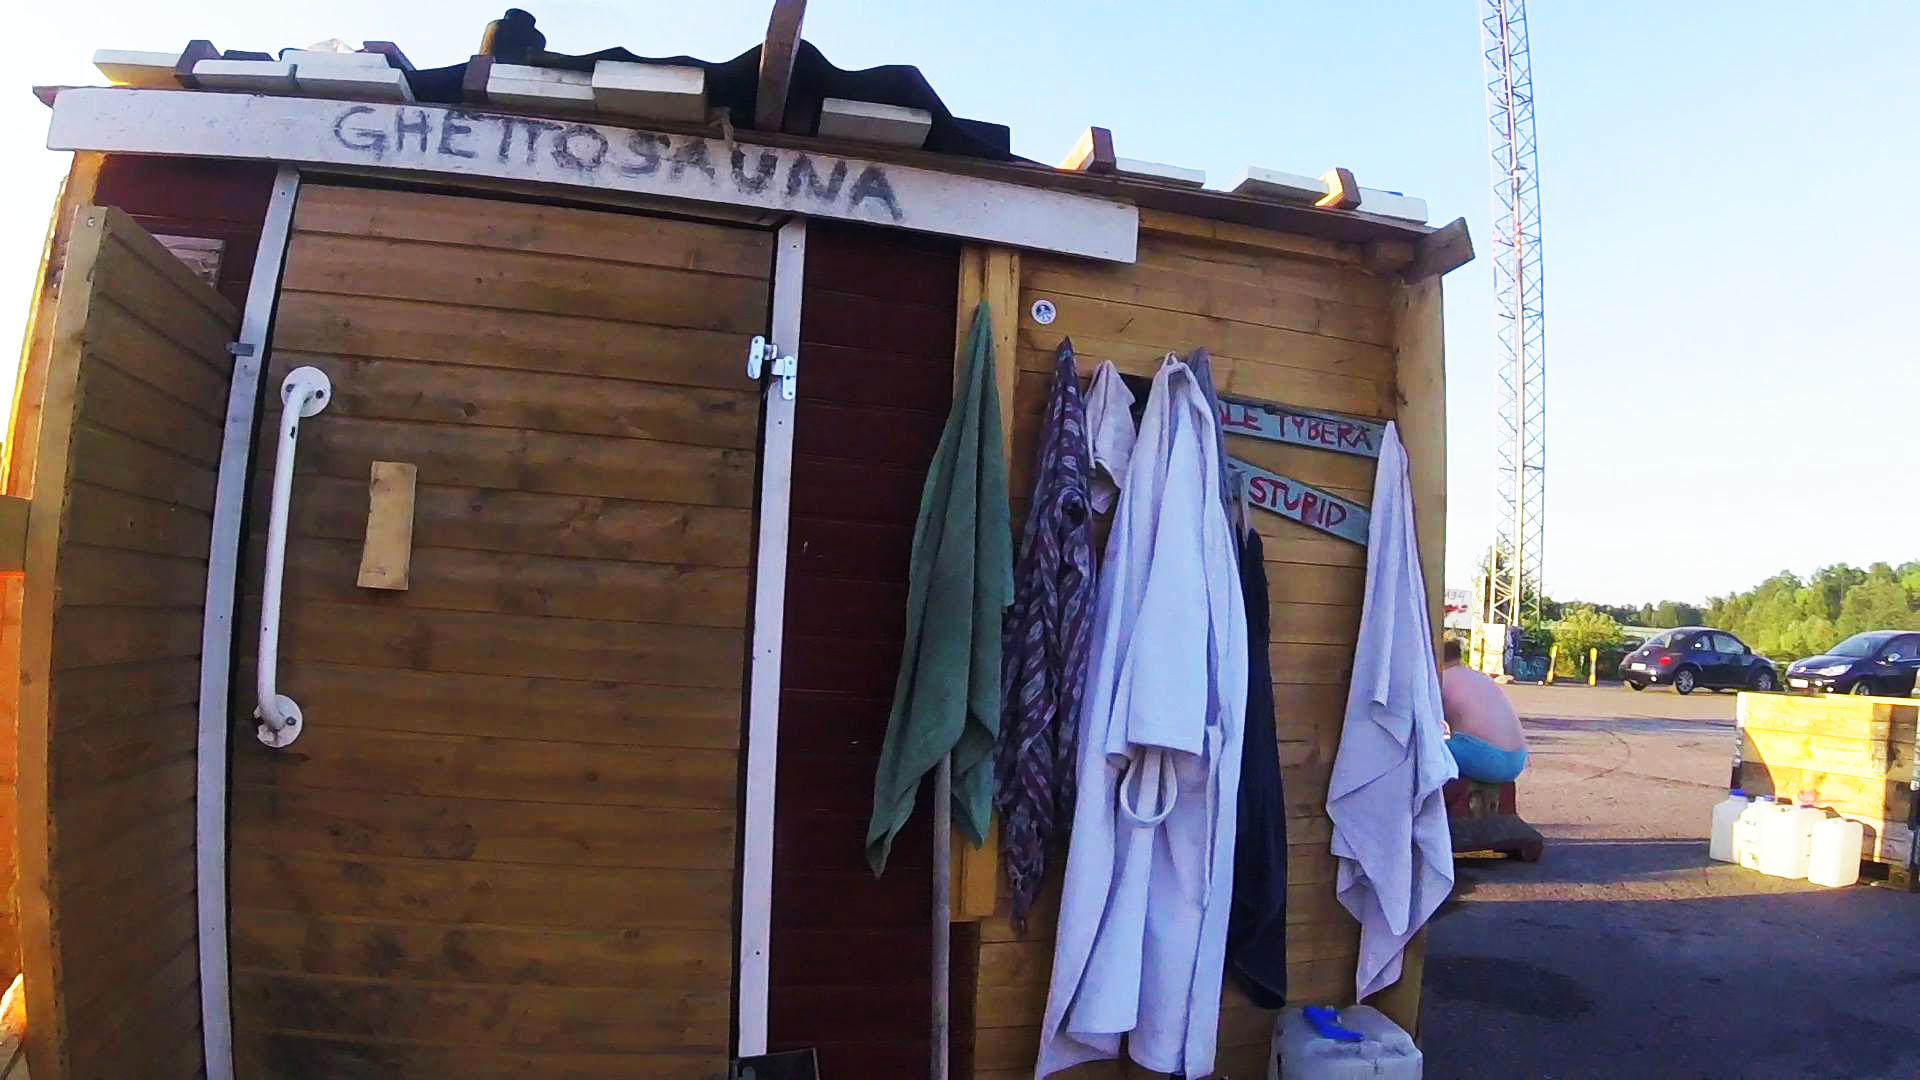 wooden shed with hanged towels and a sign saying ghetto sauna referring to sompasauna the illegal sauna in helsinki